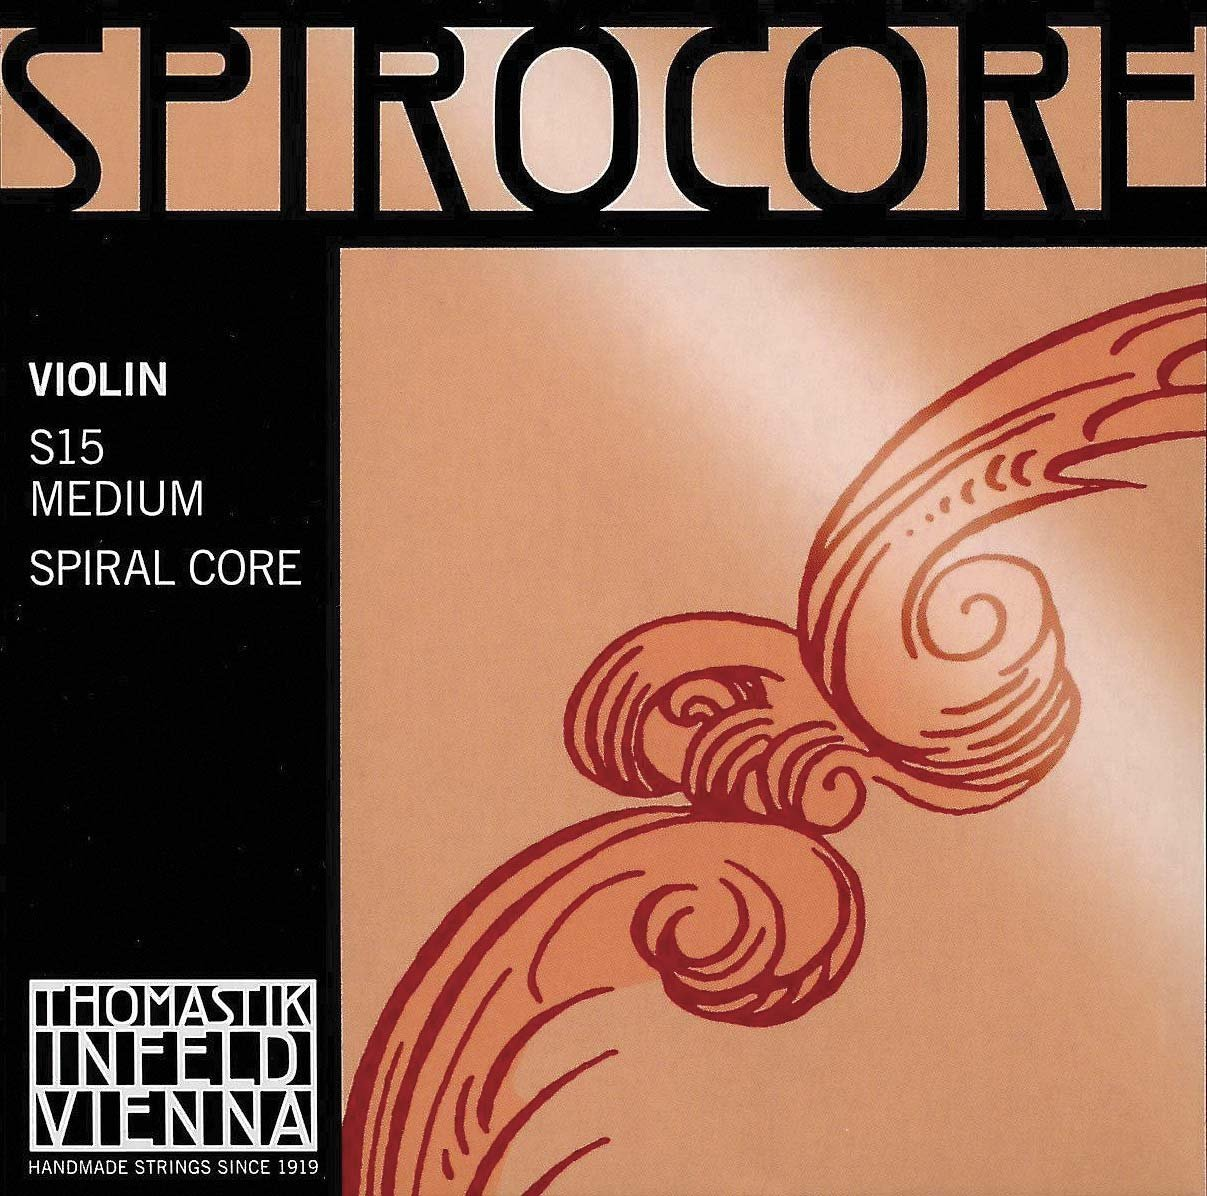 Thomastik Infeld Spirocore 4/4 Violin String Set - Medium Gauge with Ball End E